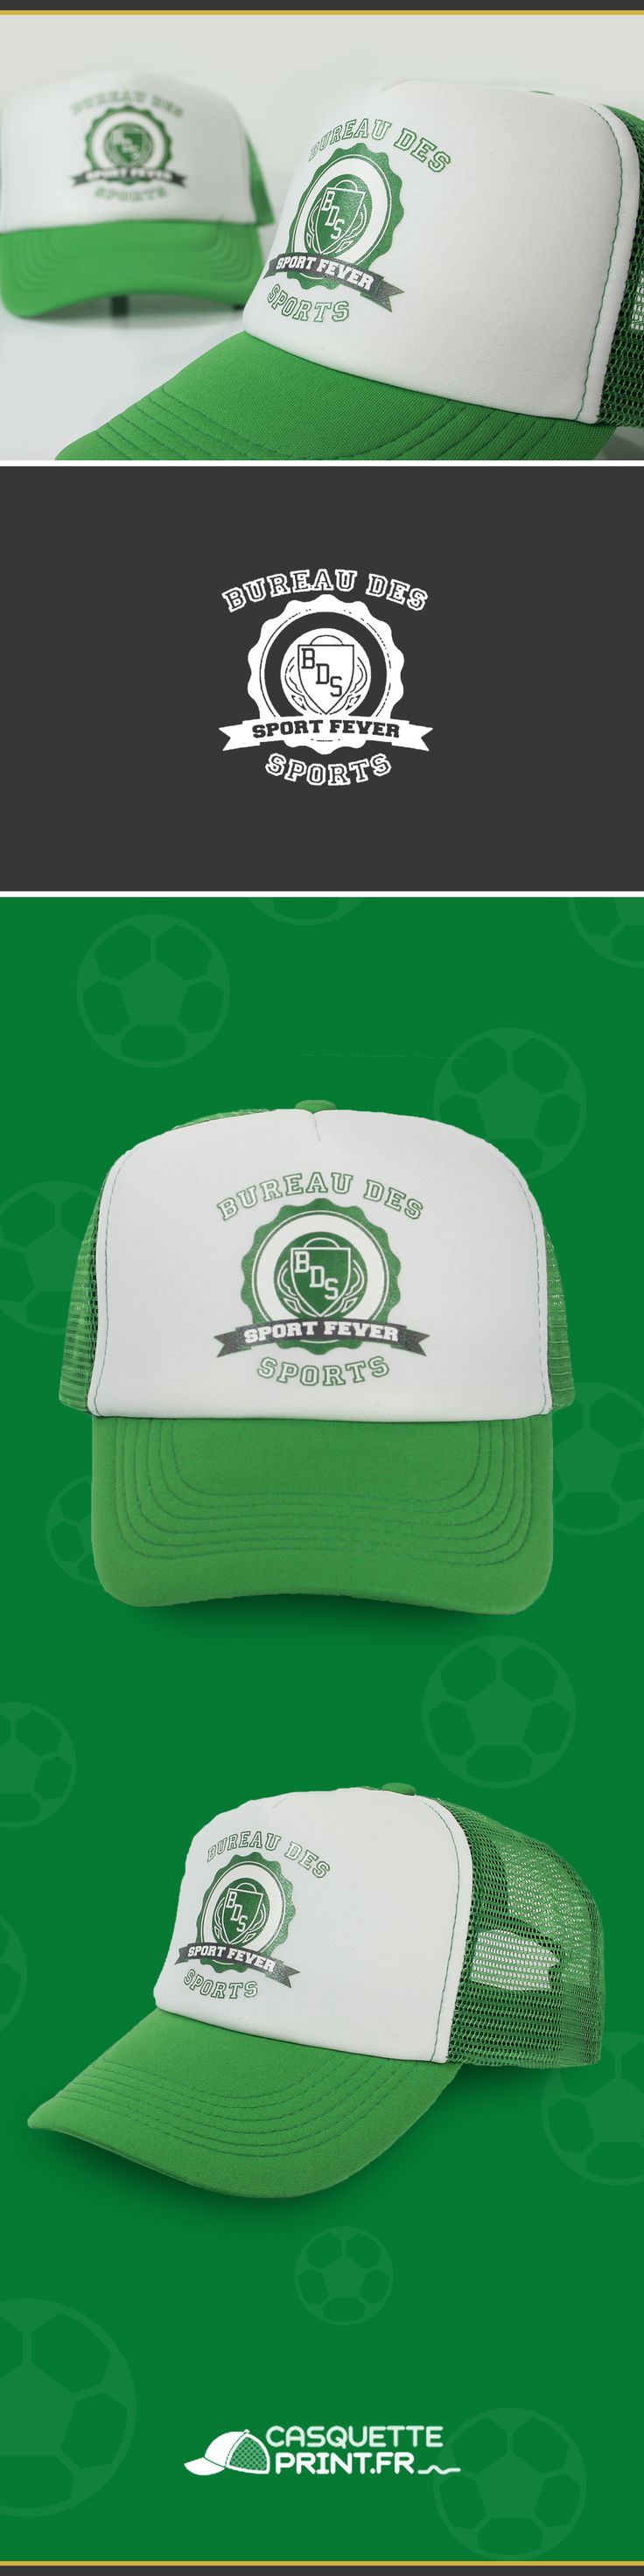 Casquette Trucker à personnaliser pour équipe de sport ou club sportif.  Créez votre casquette unique pour votre club de foot, basket ou tennis. #casquette #trucker #club #foot #sport #basket #football #soccer #green #truckerclassic #truckerjunior #casquettes #associations